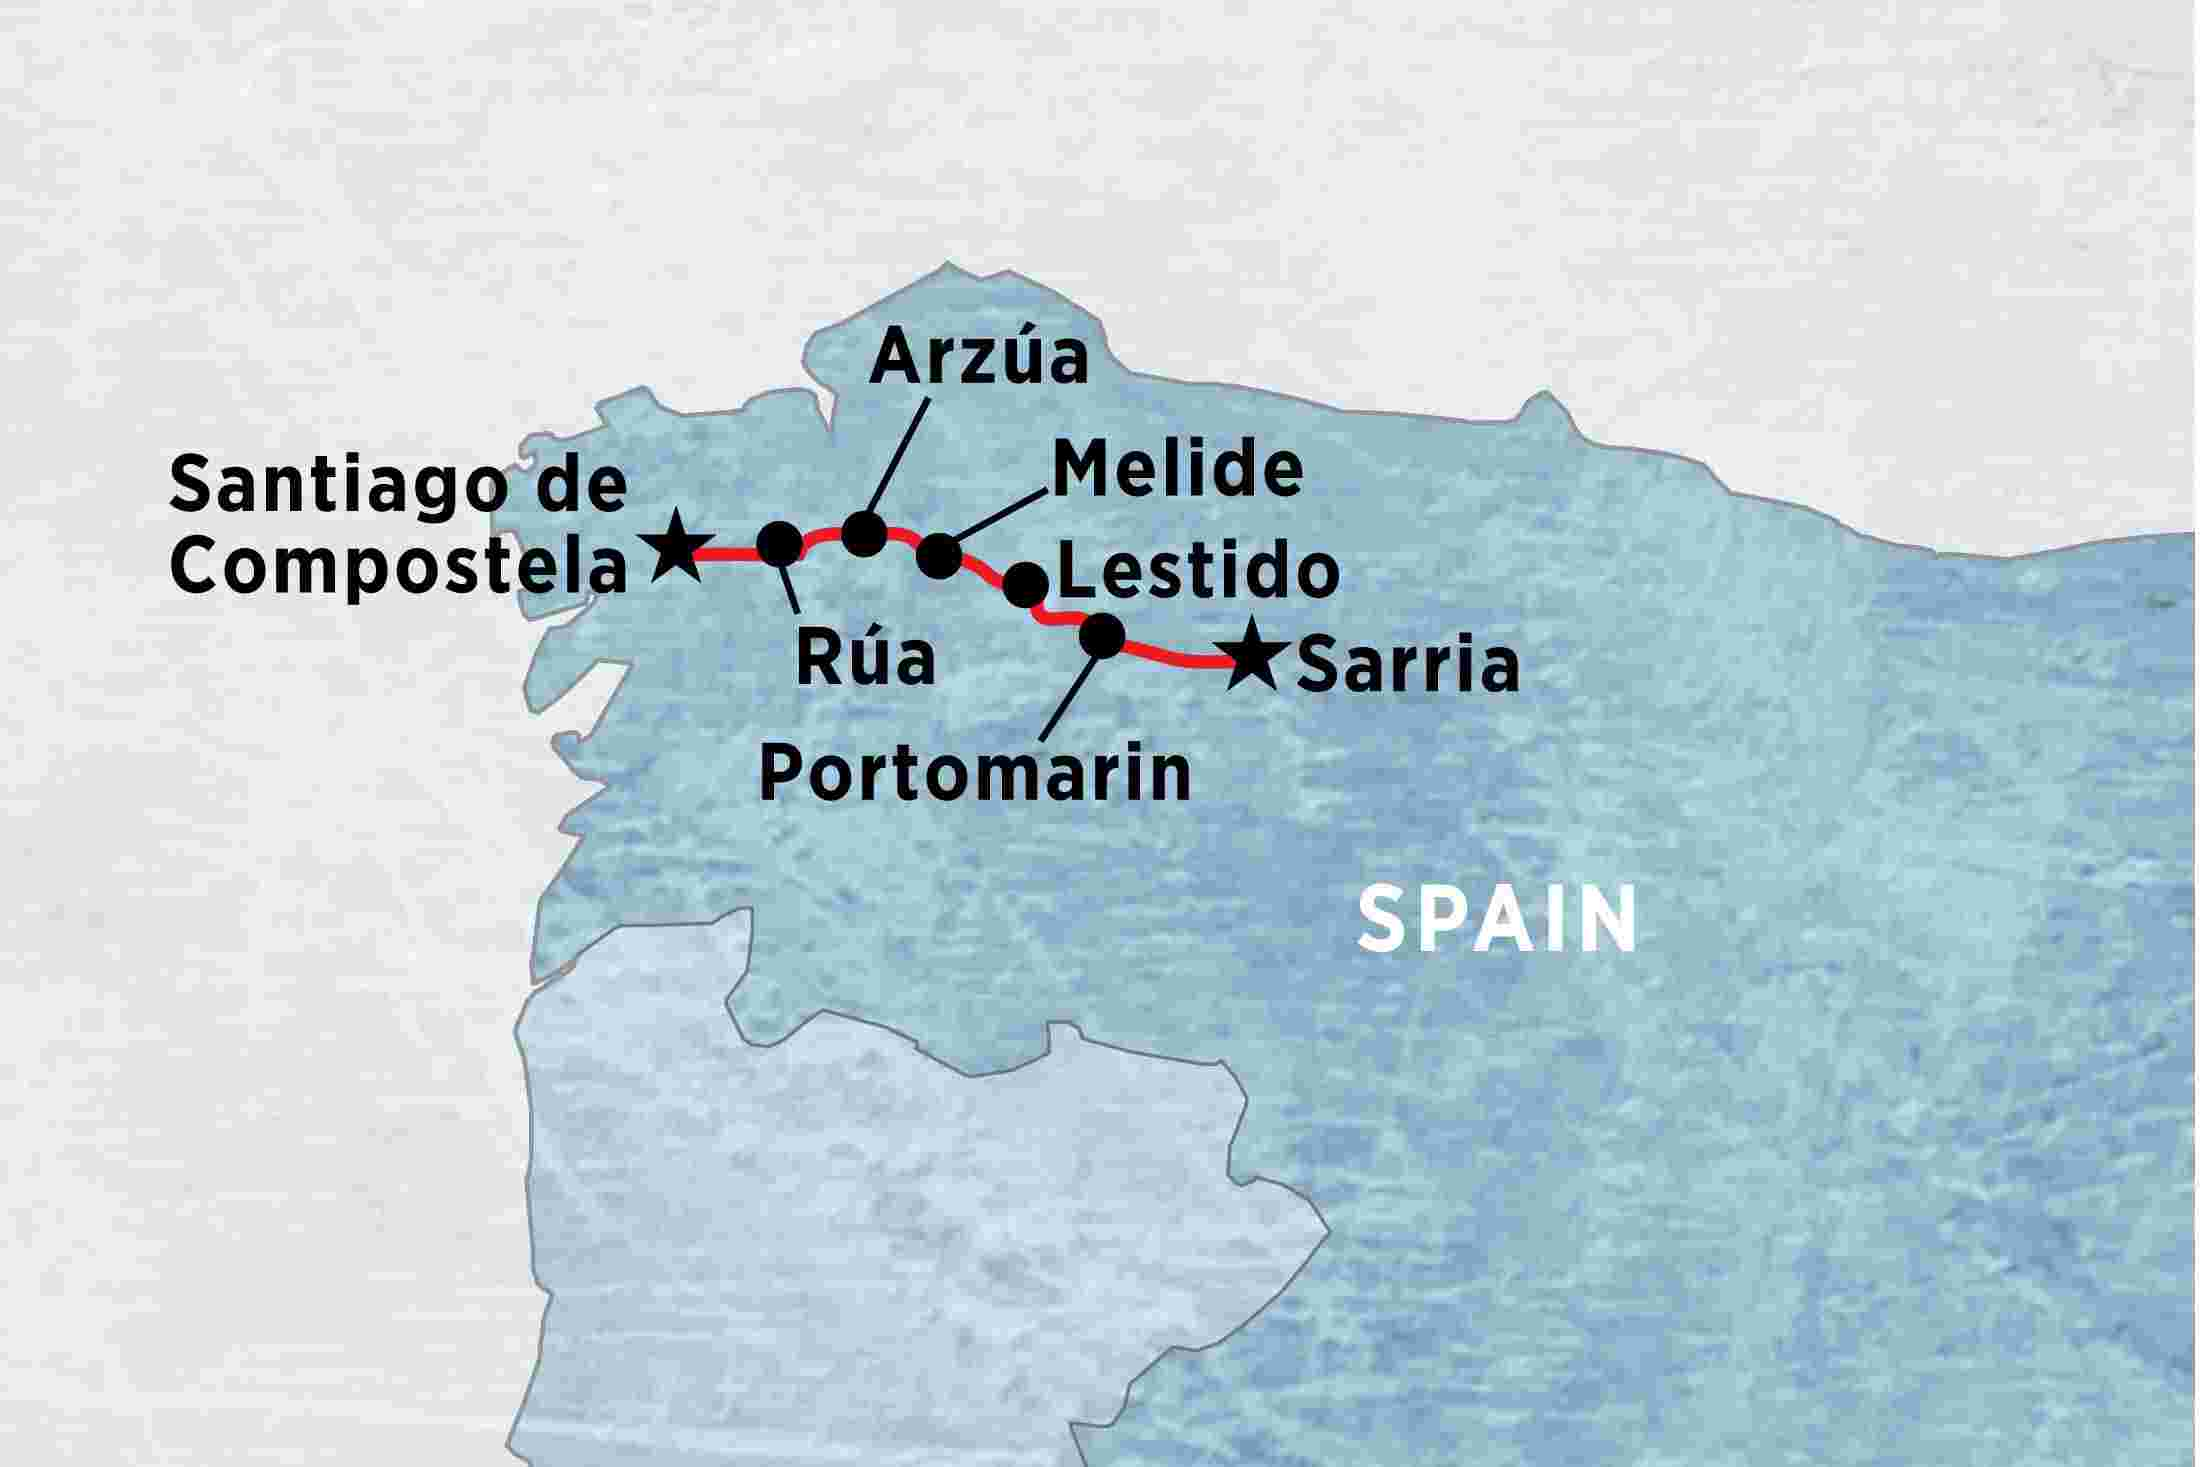 Camino Walk Spain Map.A Week On The Camino Self Guided Overview A Week On The Camino Self Guided